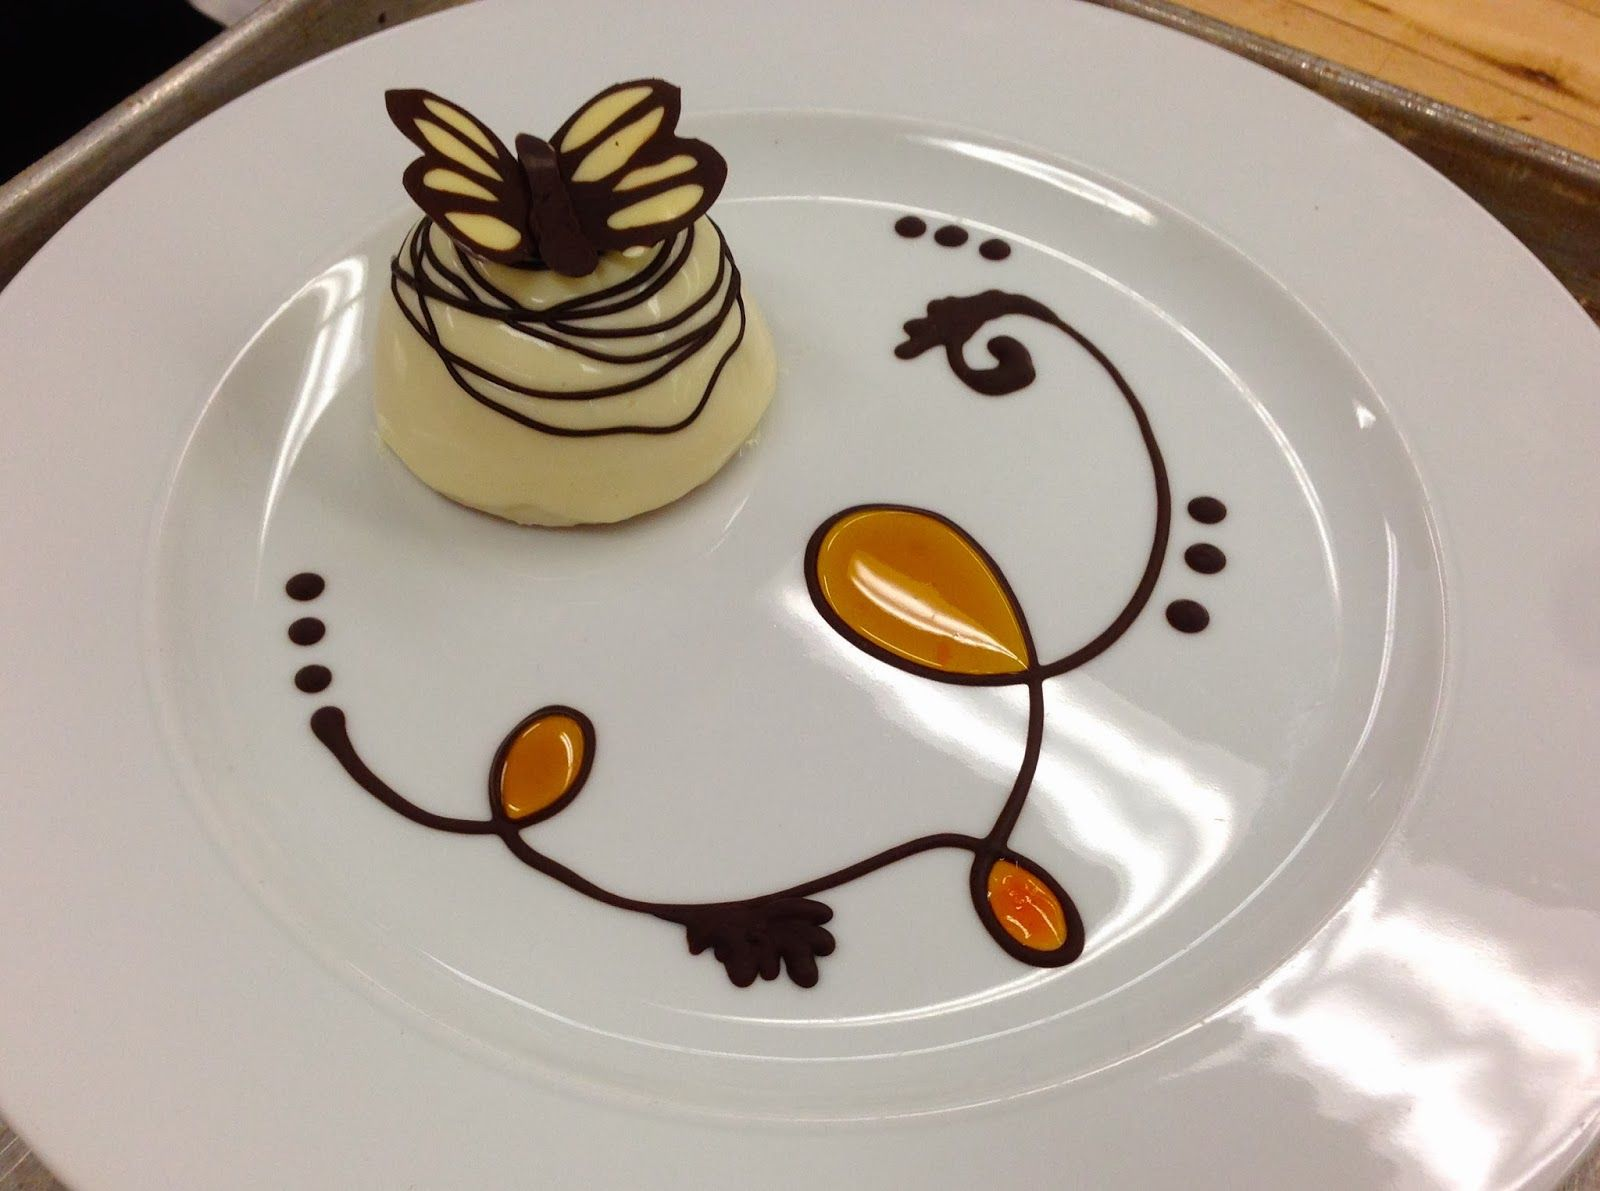 Plate Designs For Desserts Home Decorating Ideas Interior Design & Plate Designs For Desserts - Home Decorating Ideas u0026 Interior Design